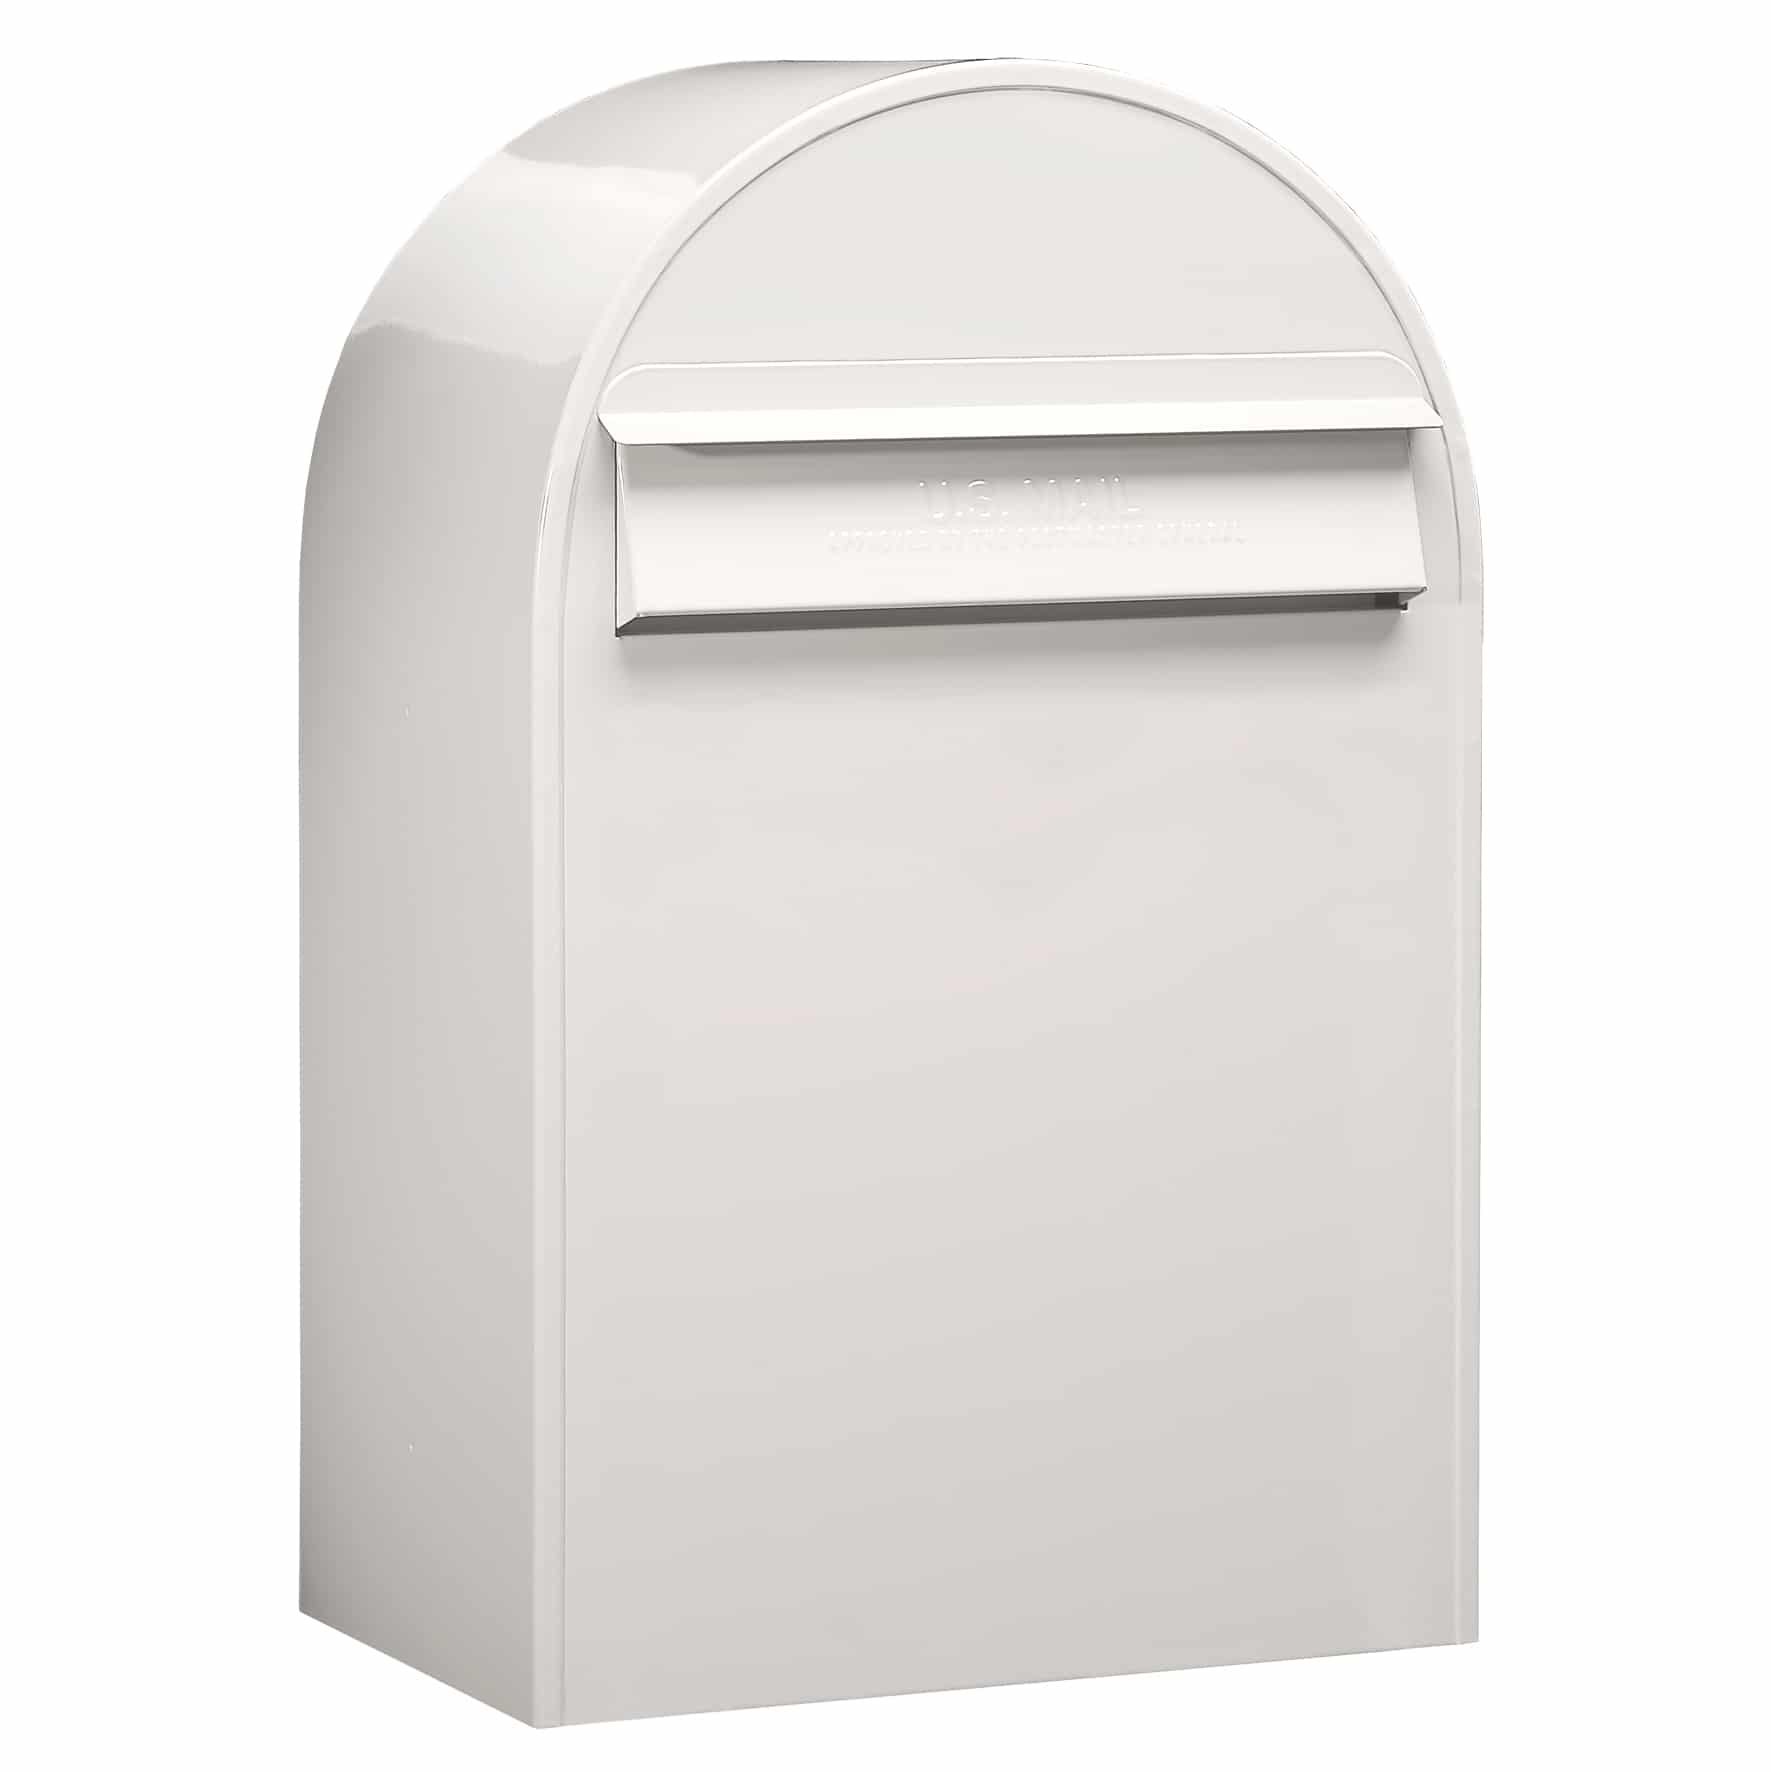 Bobi Classic Rear Access Wall Mount Mailbox Product Image